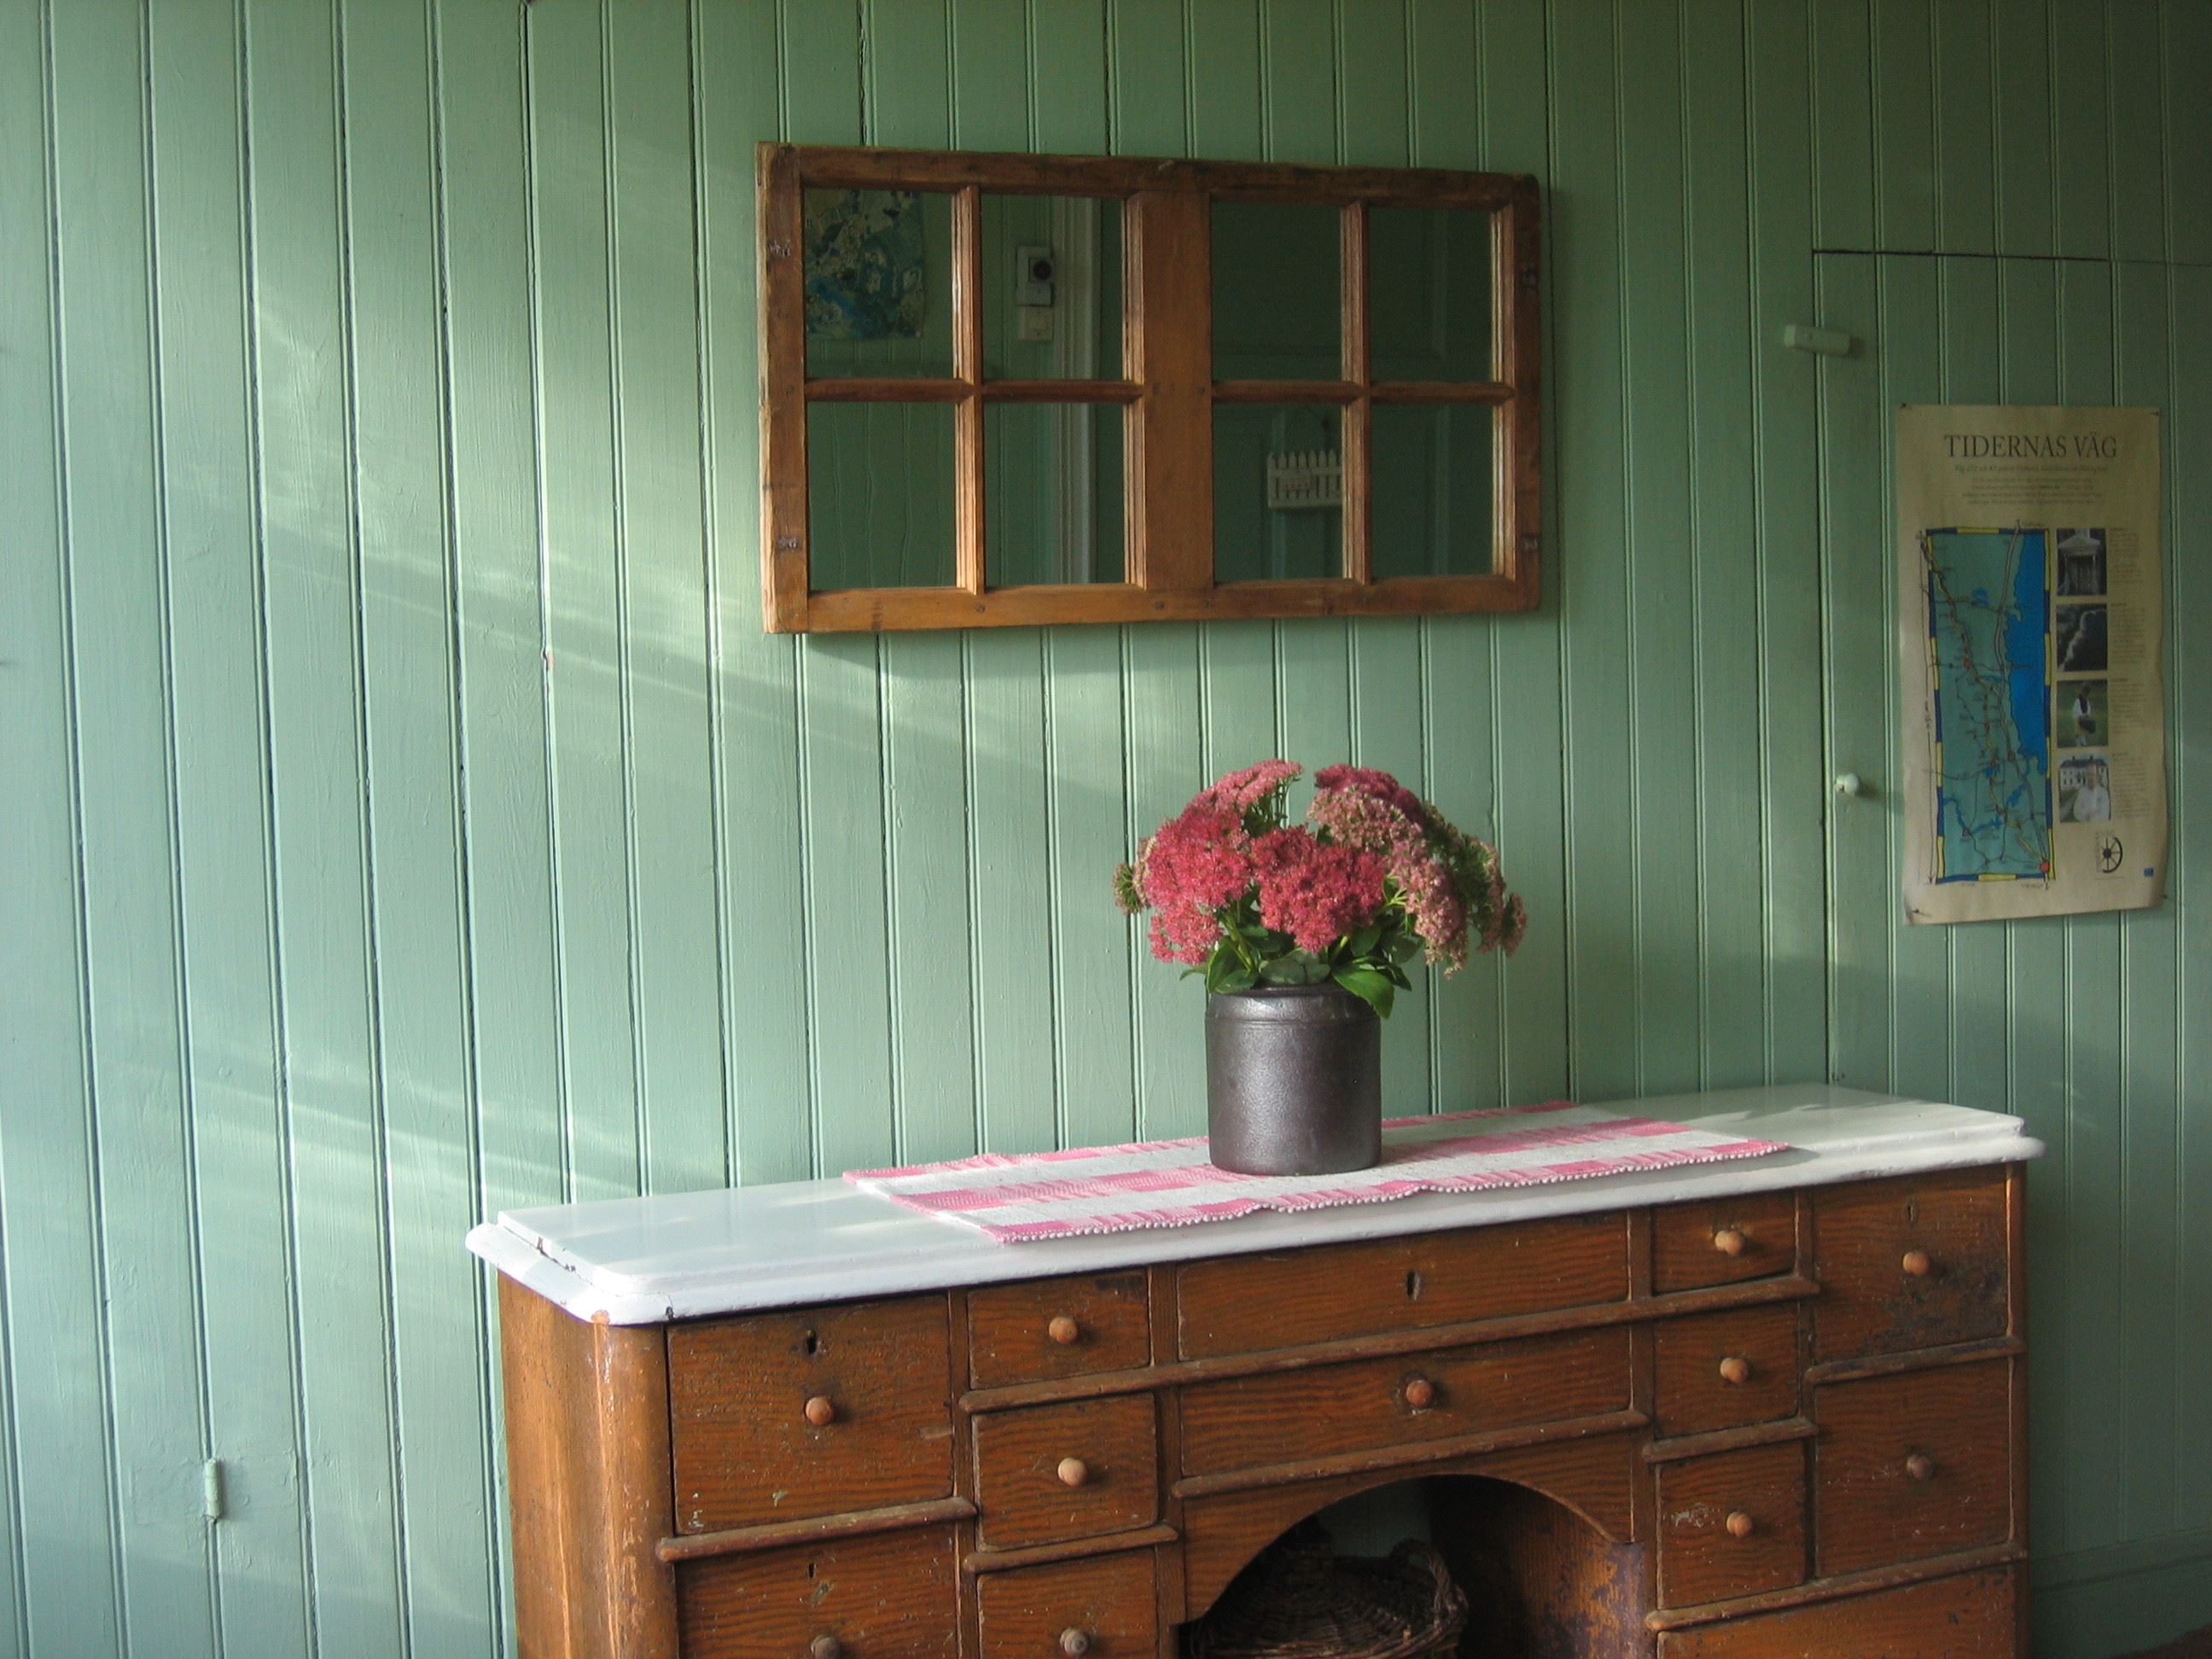 Stay at a Hälsingland farm, located close to the water